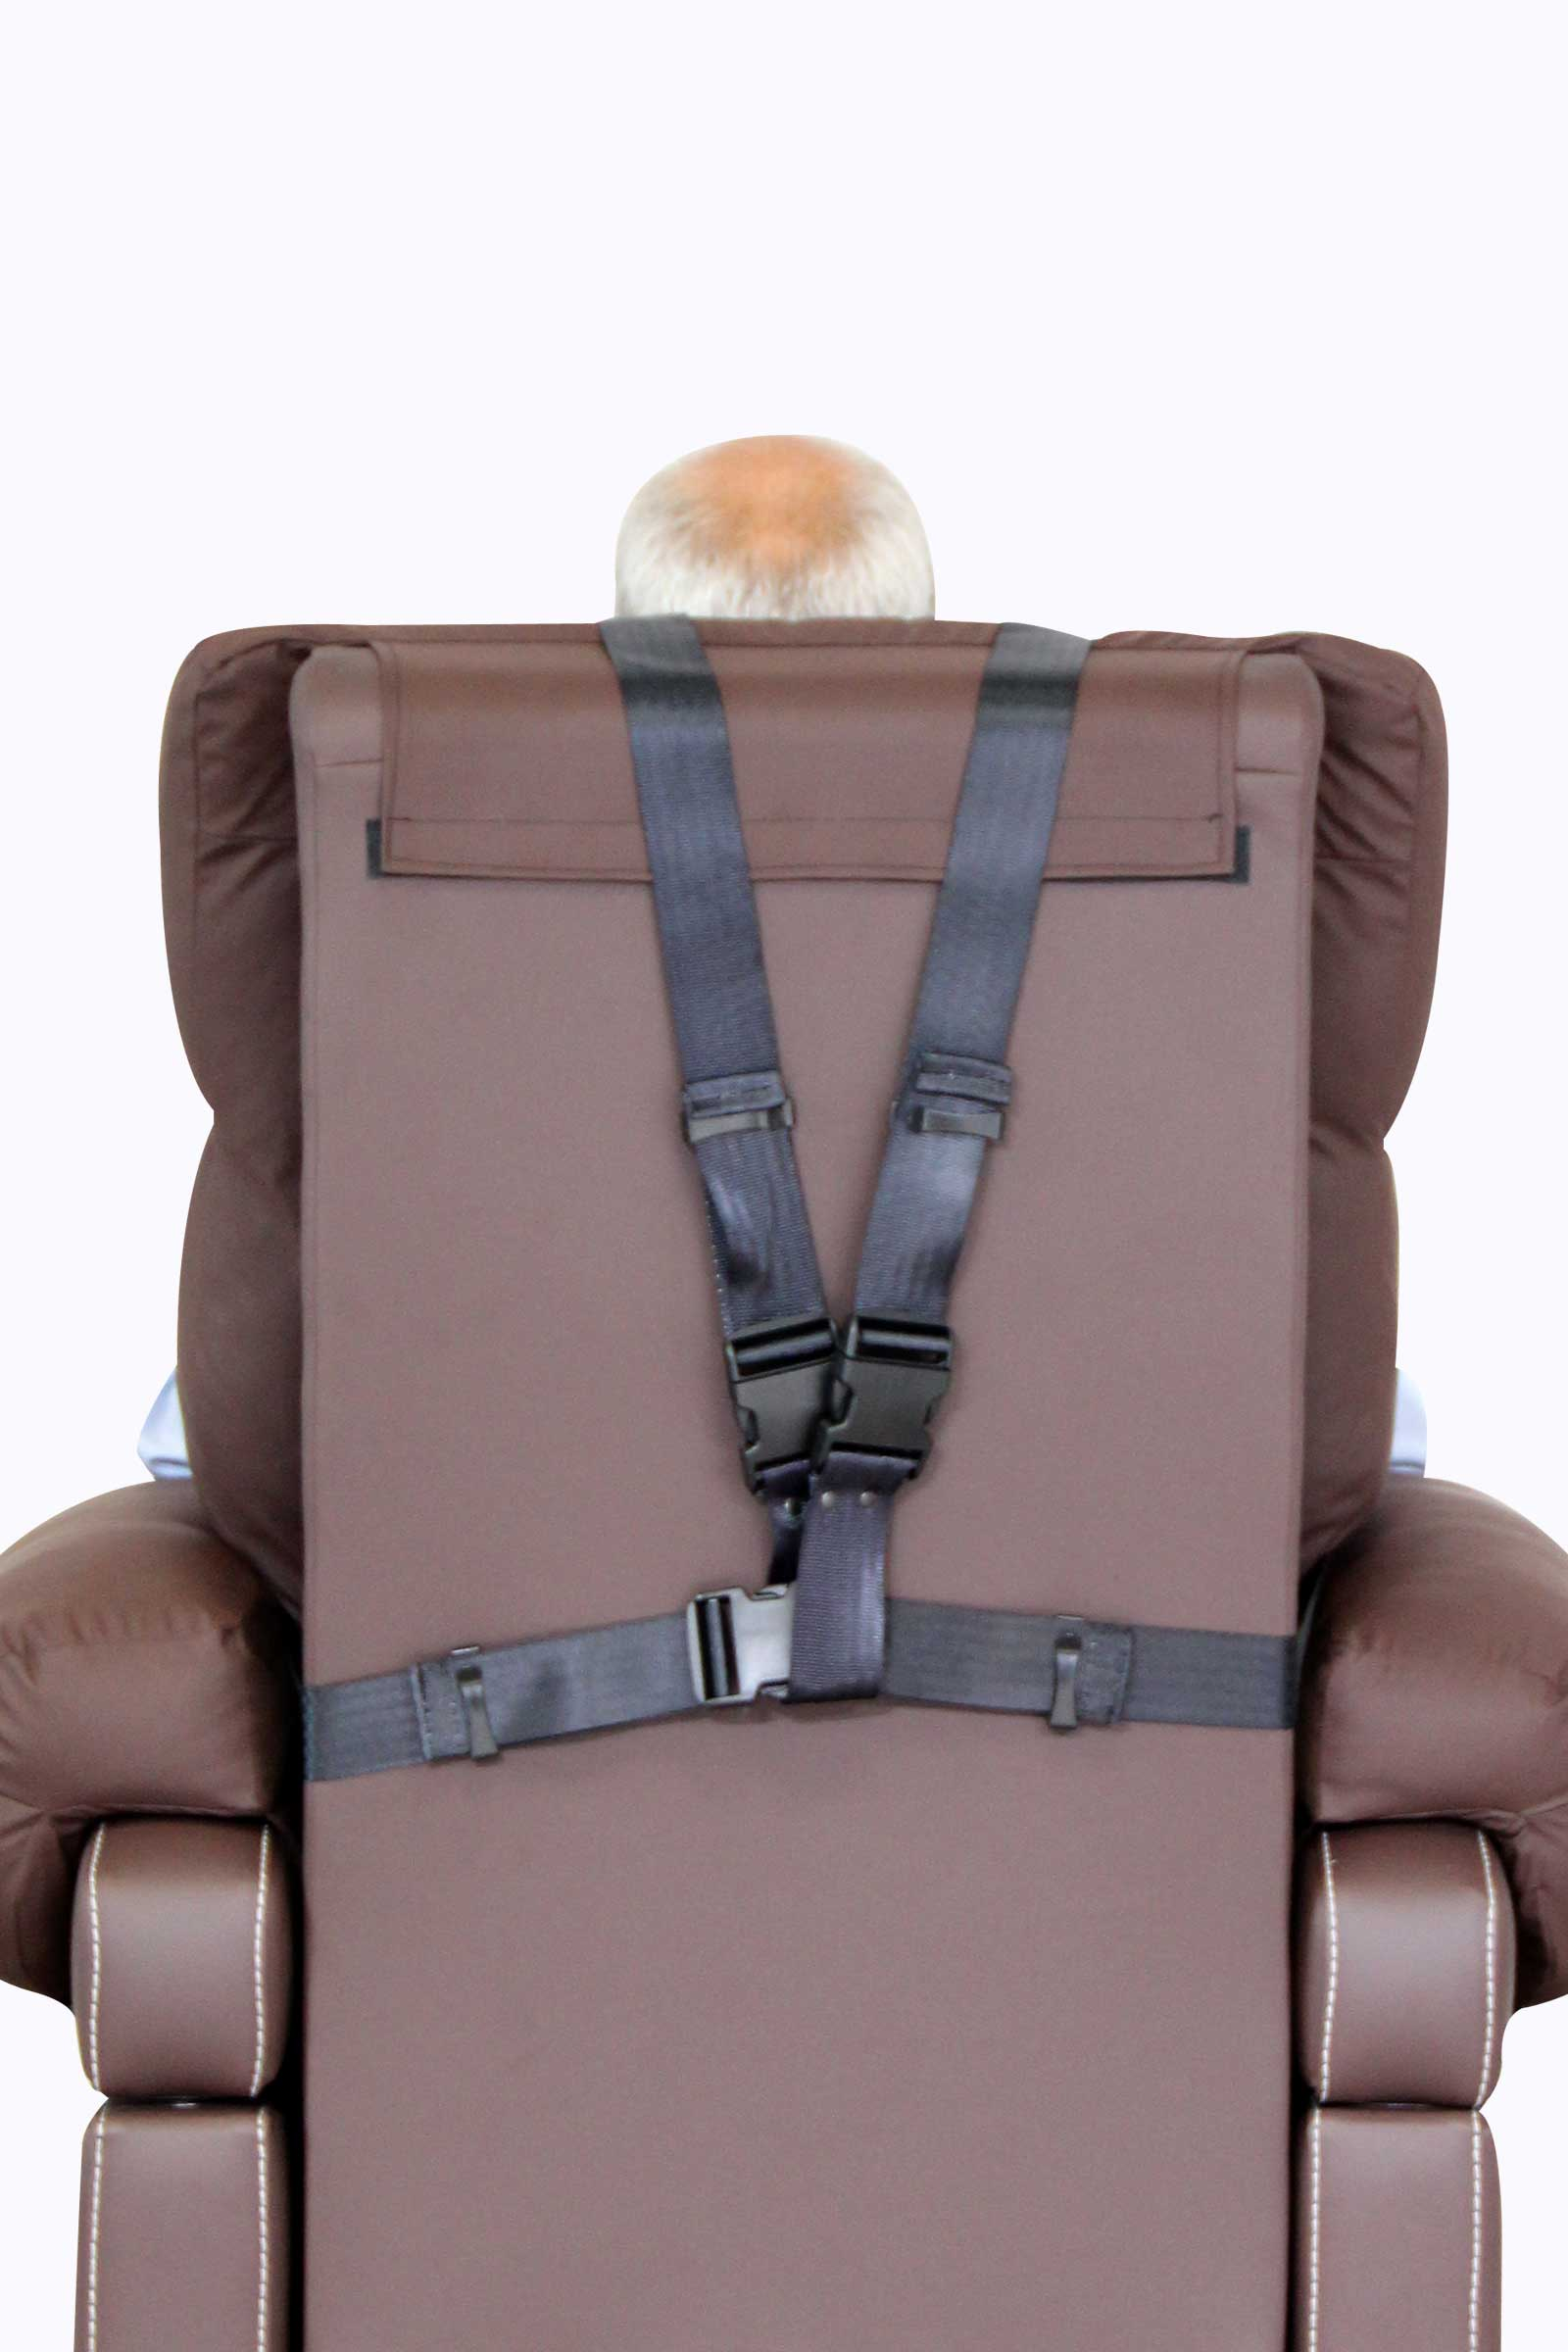 Nausicaa Medical Patient Positioning Integral Birdy Belt # Les Fauteuilles De Kitea